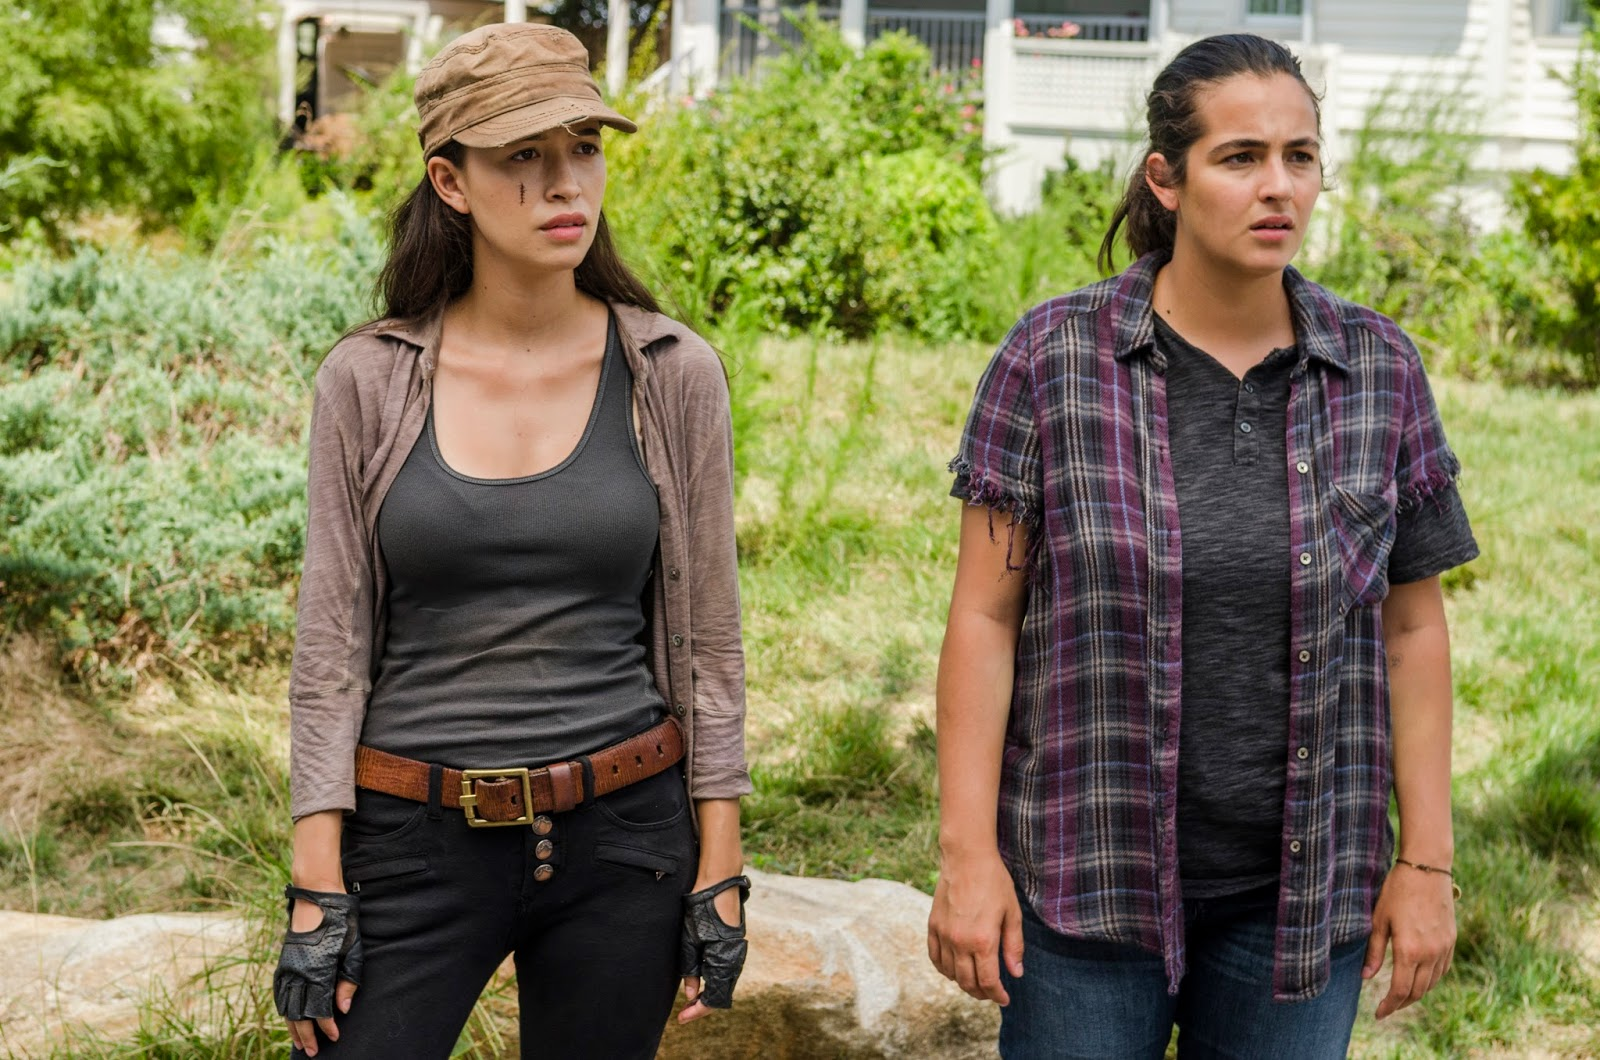 Tara y Rosita durante el episodio Rock in the Road de The Walking Dead